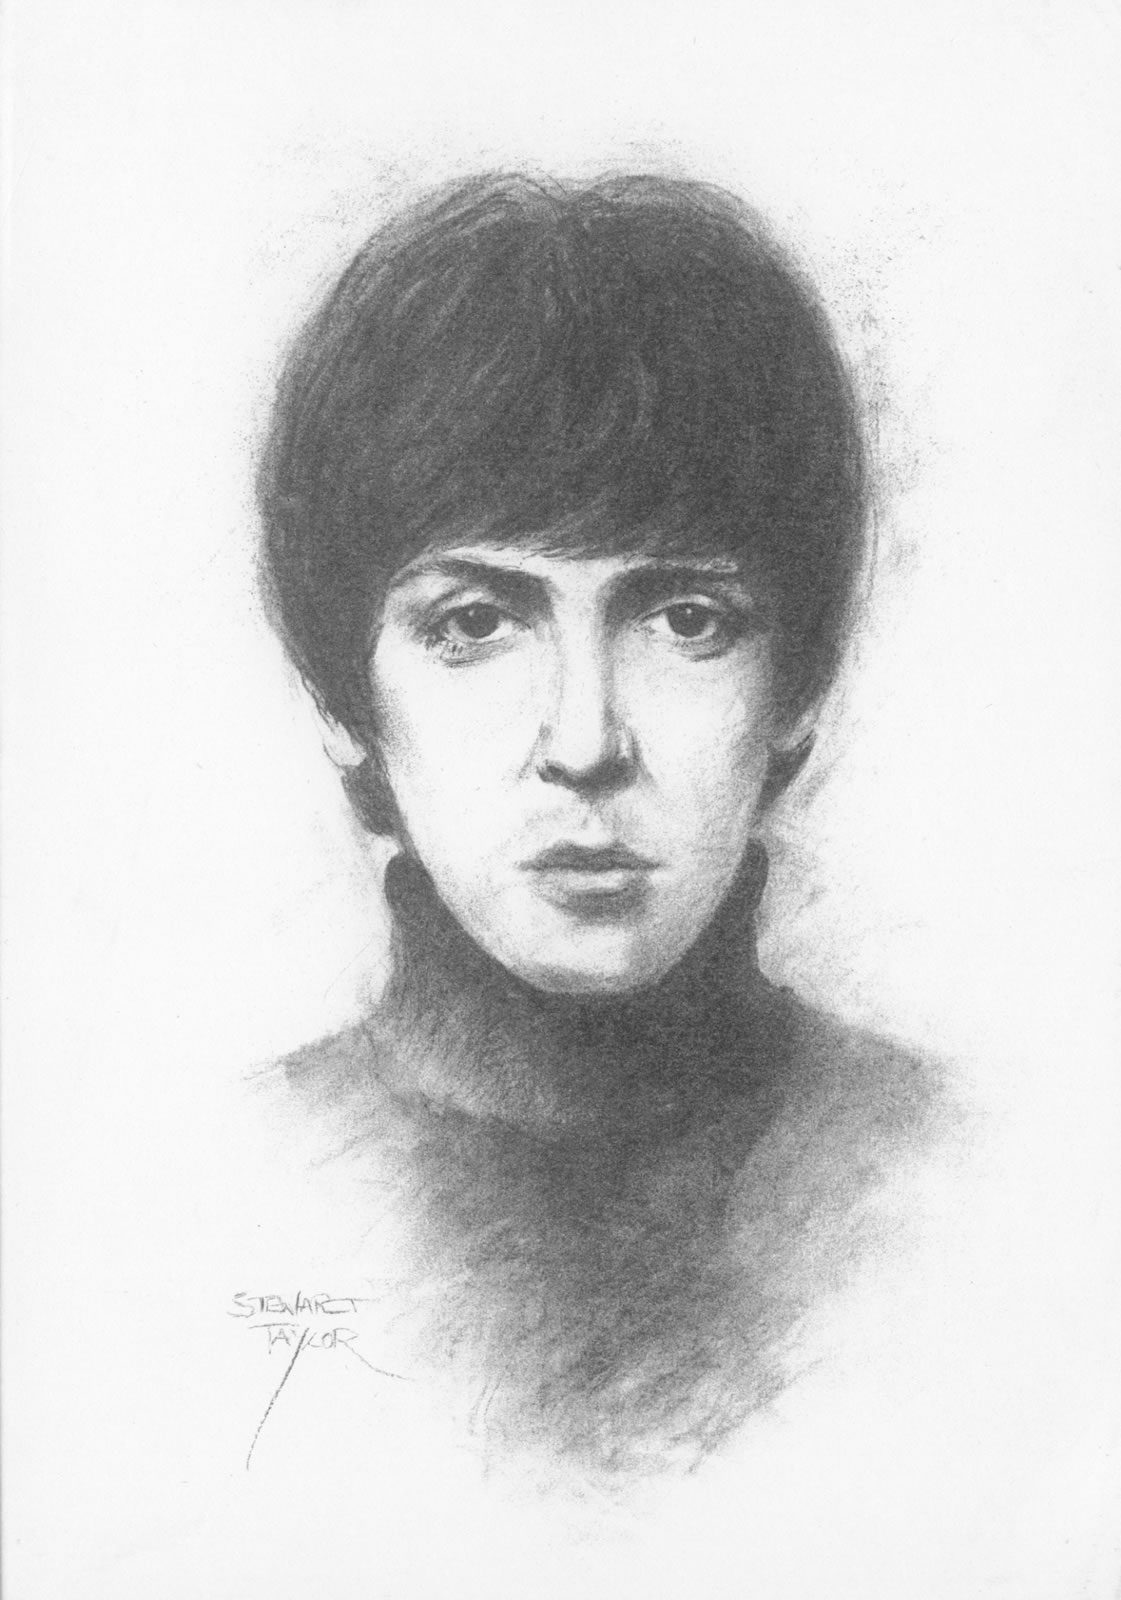 McCartney In The Beginning from an original charcoal by Stewart Taylor